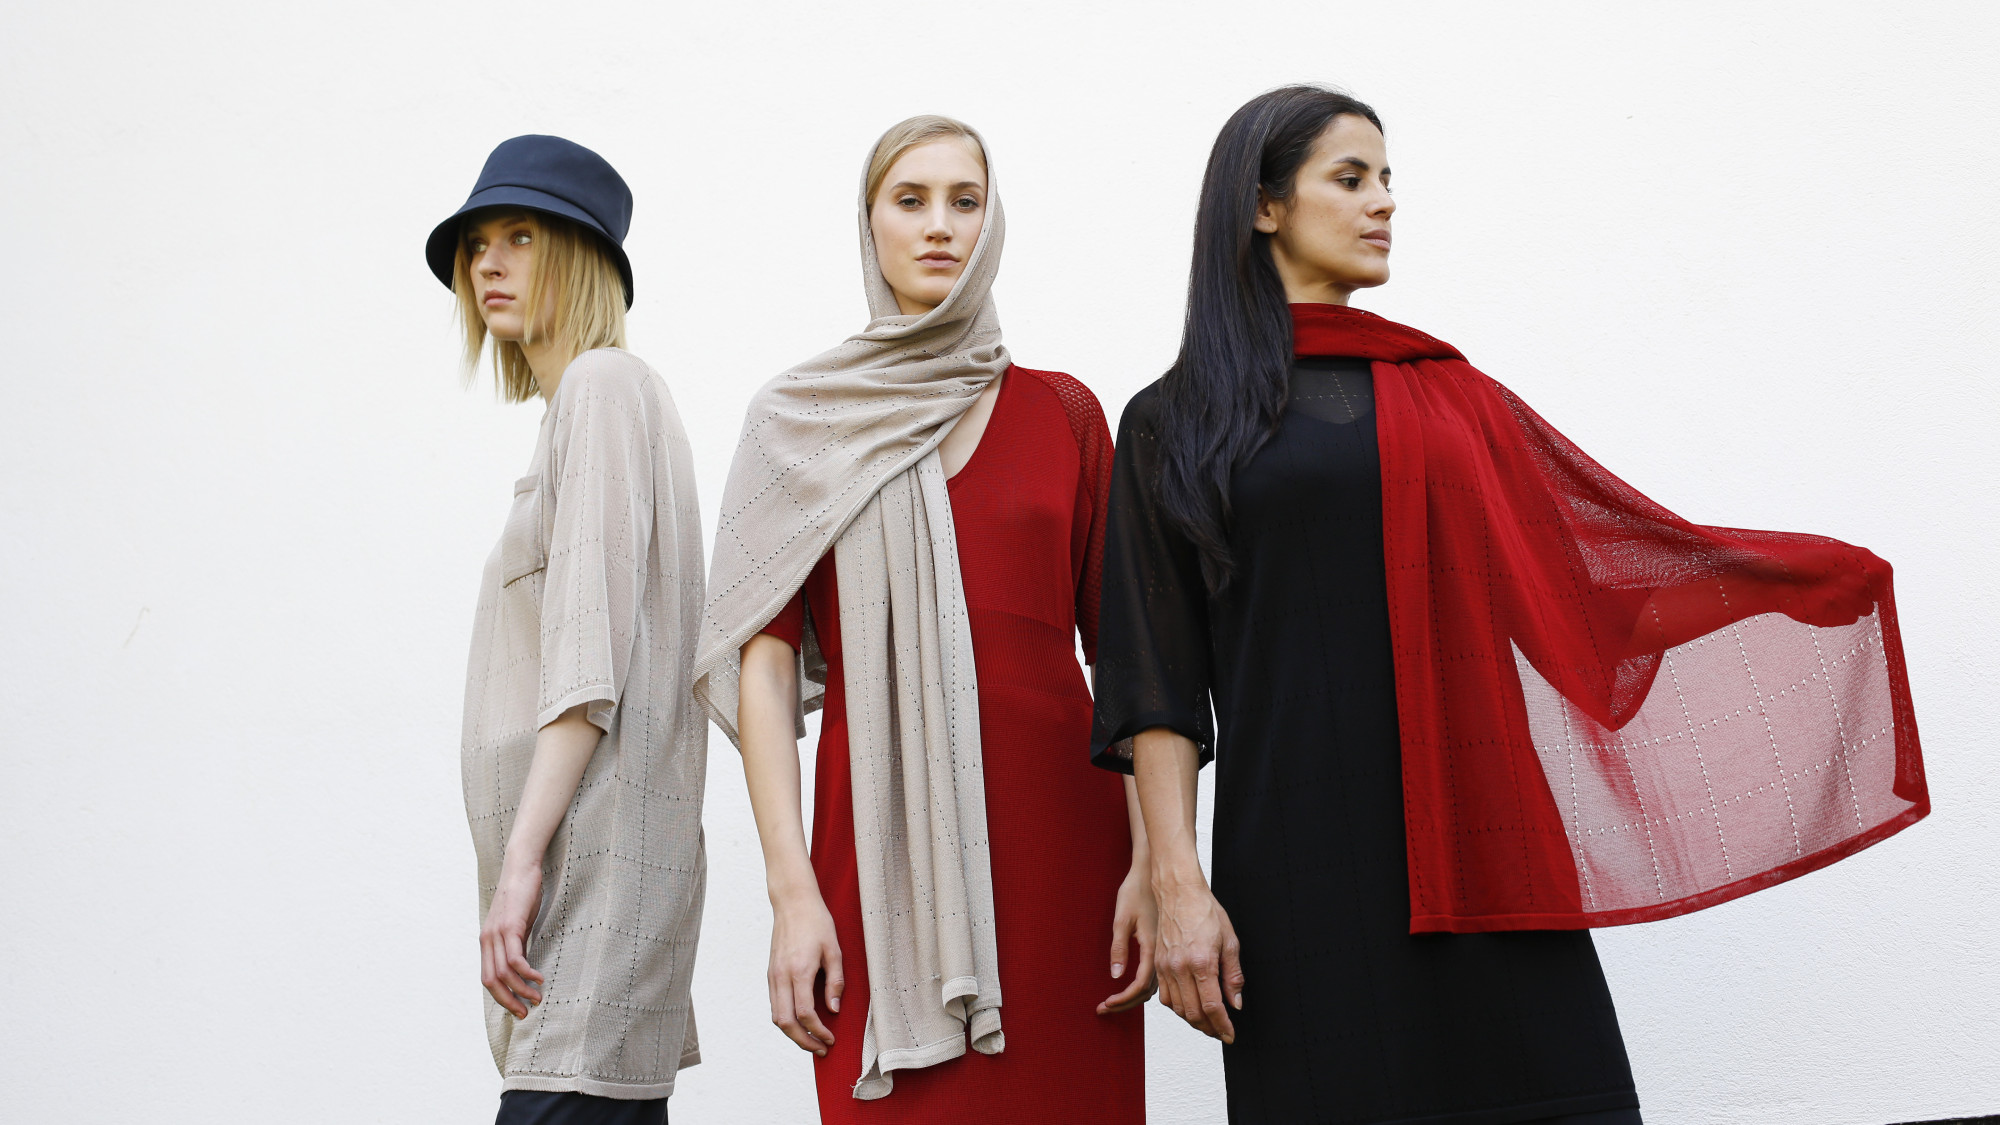 TAUKO focuses on timeless and classic designs and shapes.